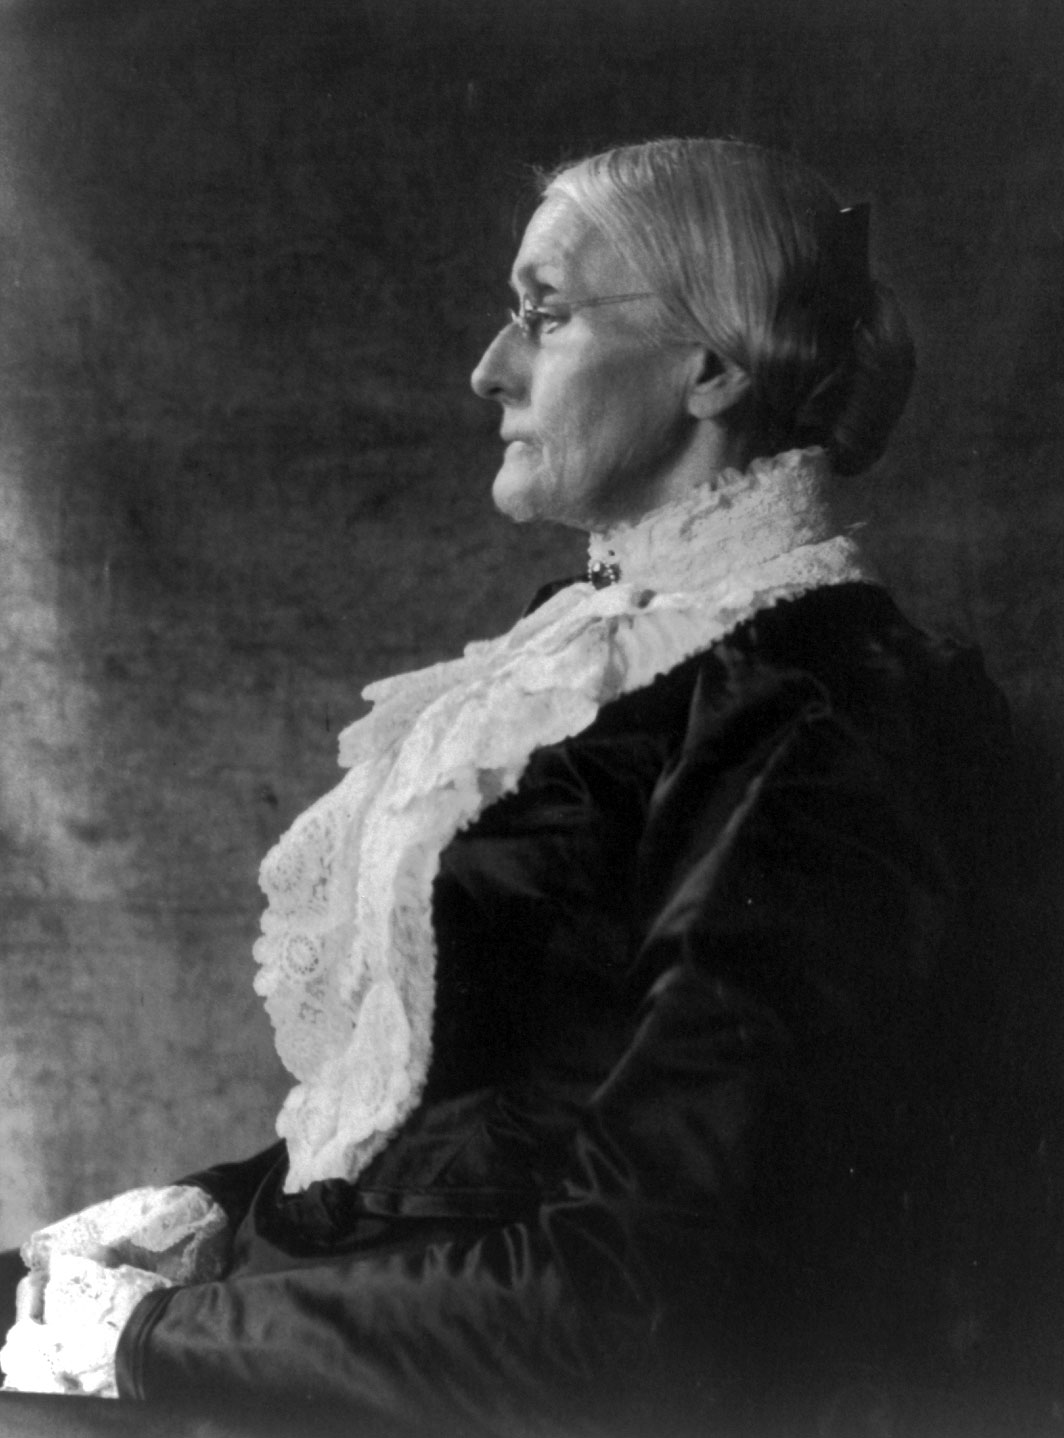 Suffragist Susan B. Anthony, between ca. 1890 and ca. 1910 (Photo Courtesy of Library of Congress)